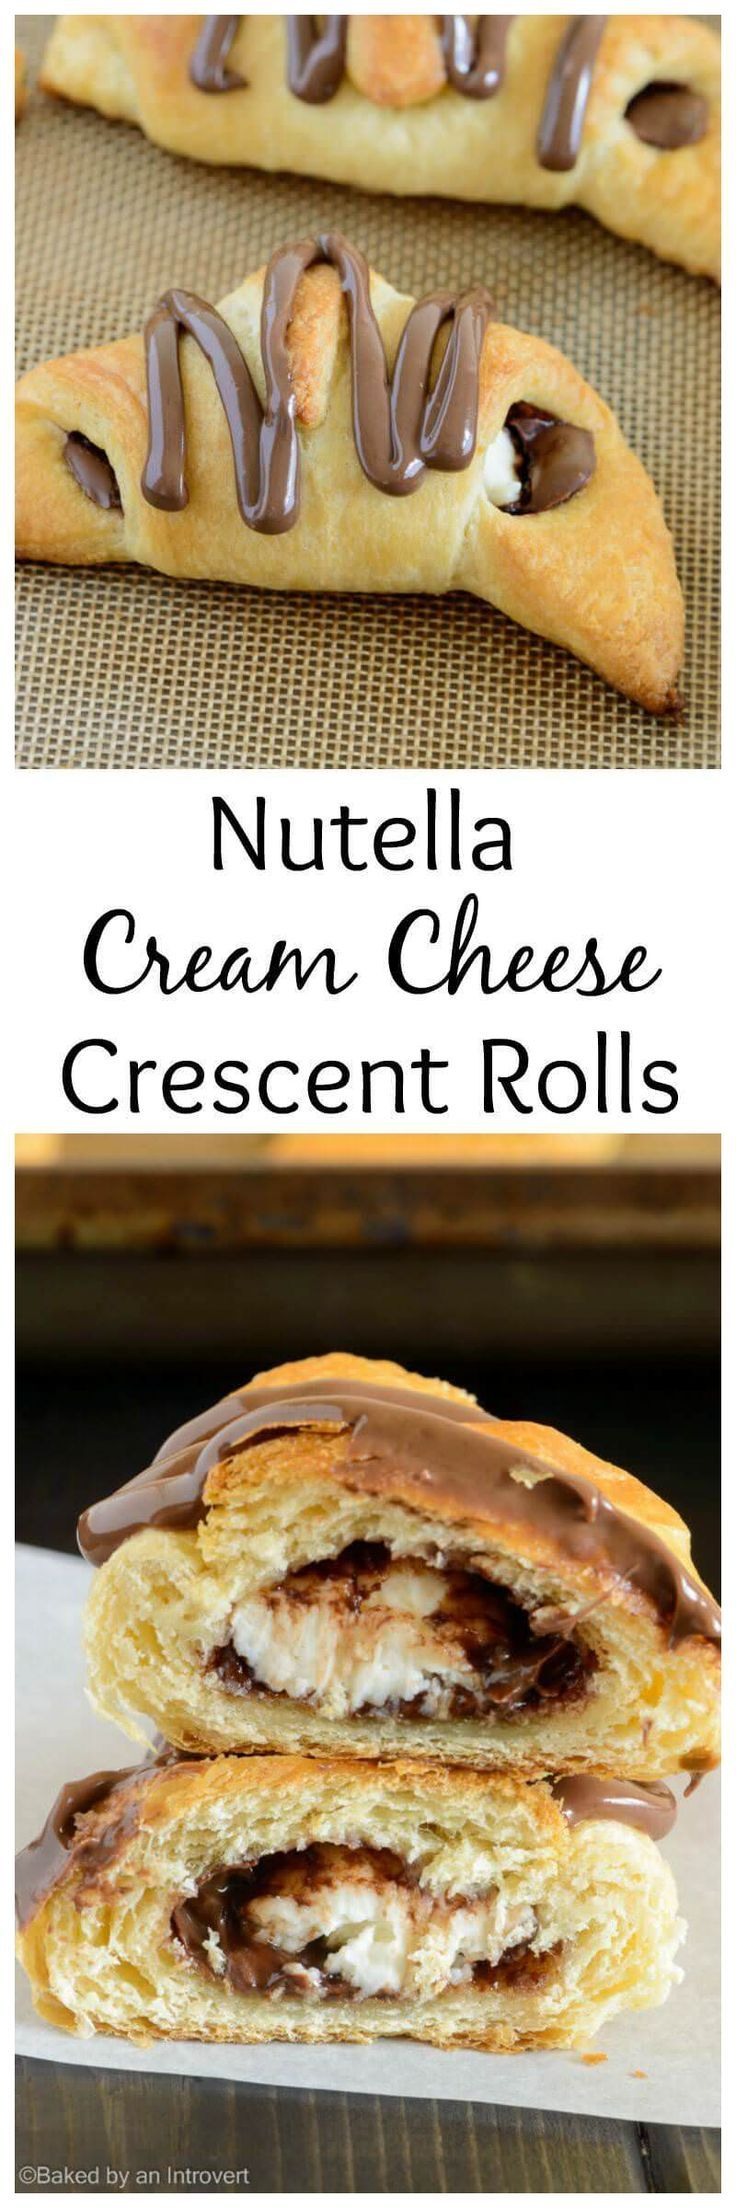 Nutella Cream Cheese Crescent Rolls | Dessert | Breakfast via @introvertbaker